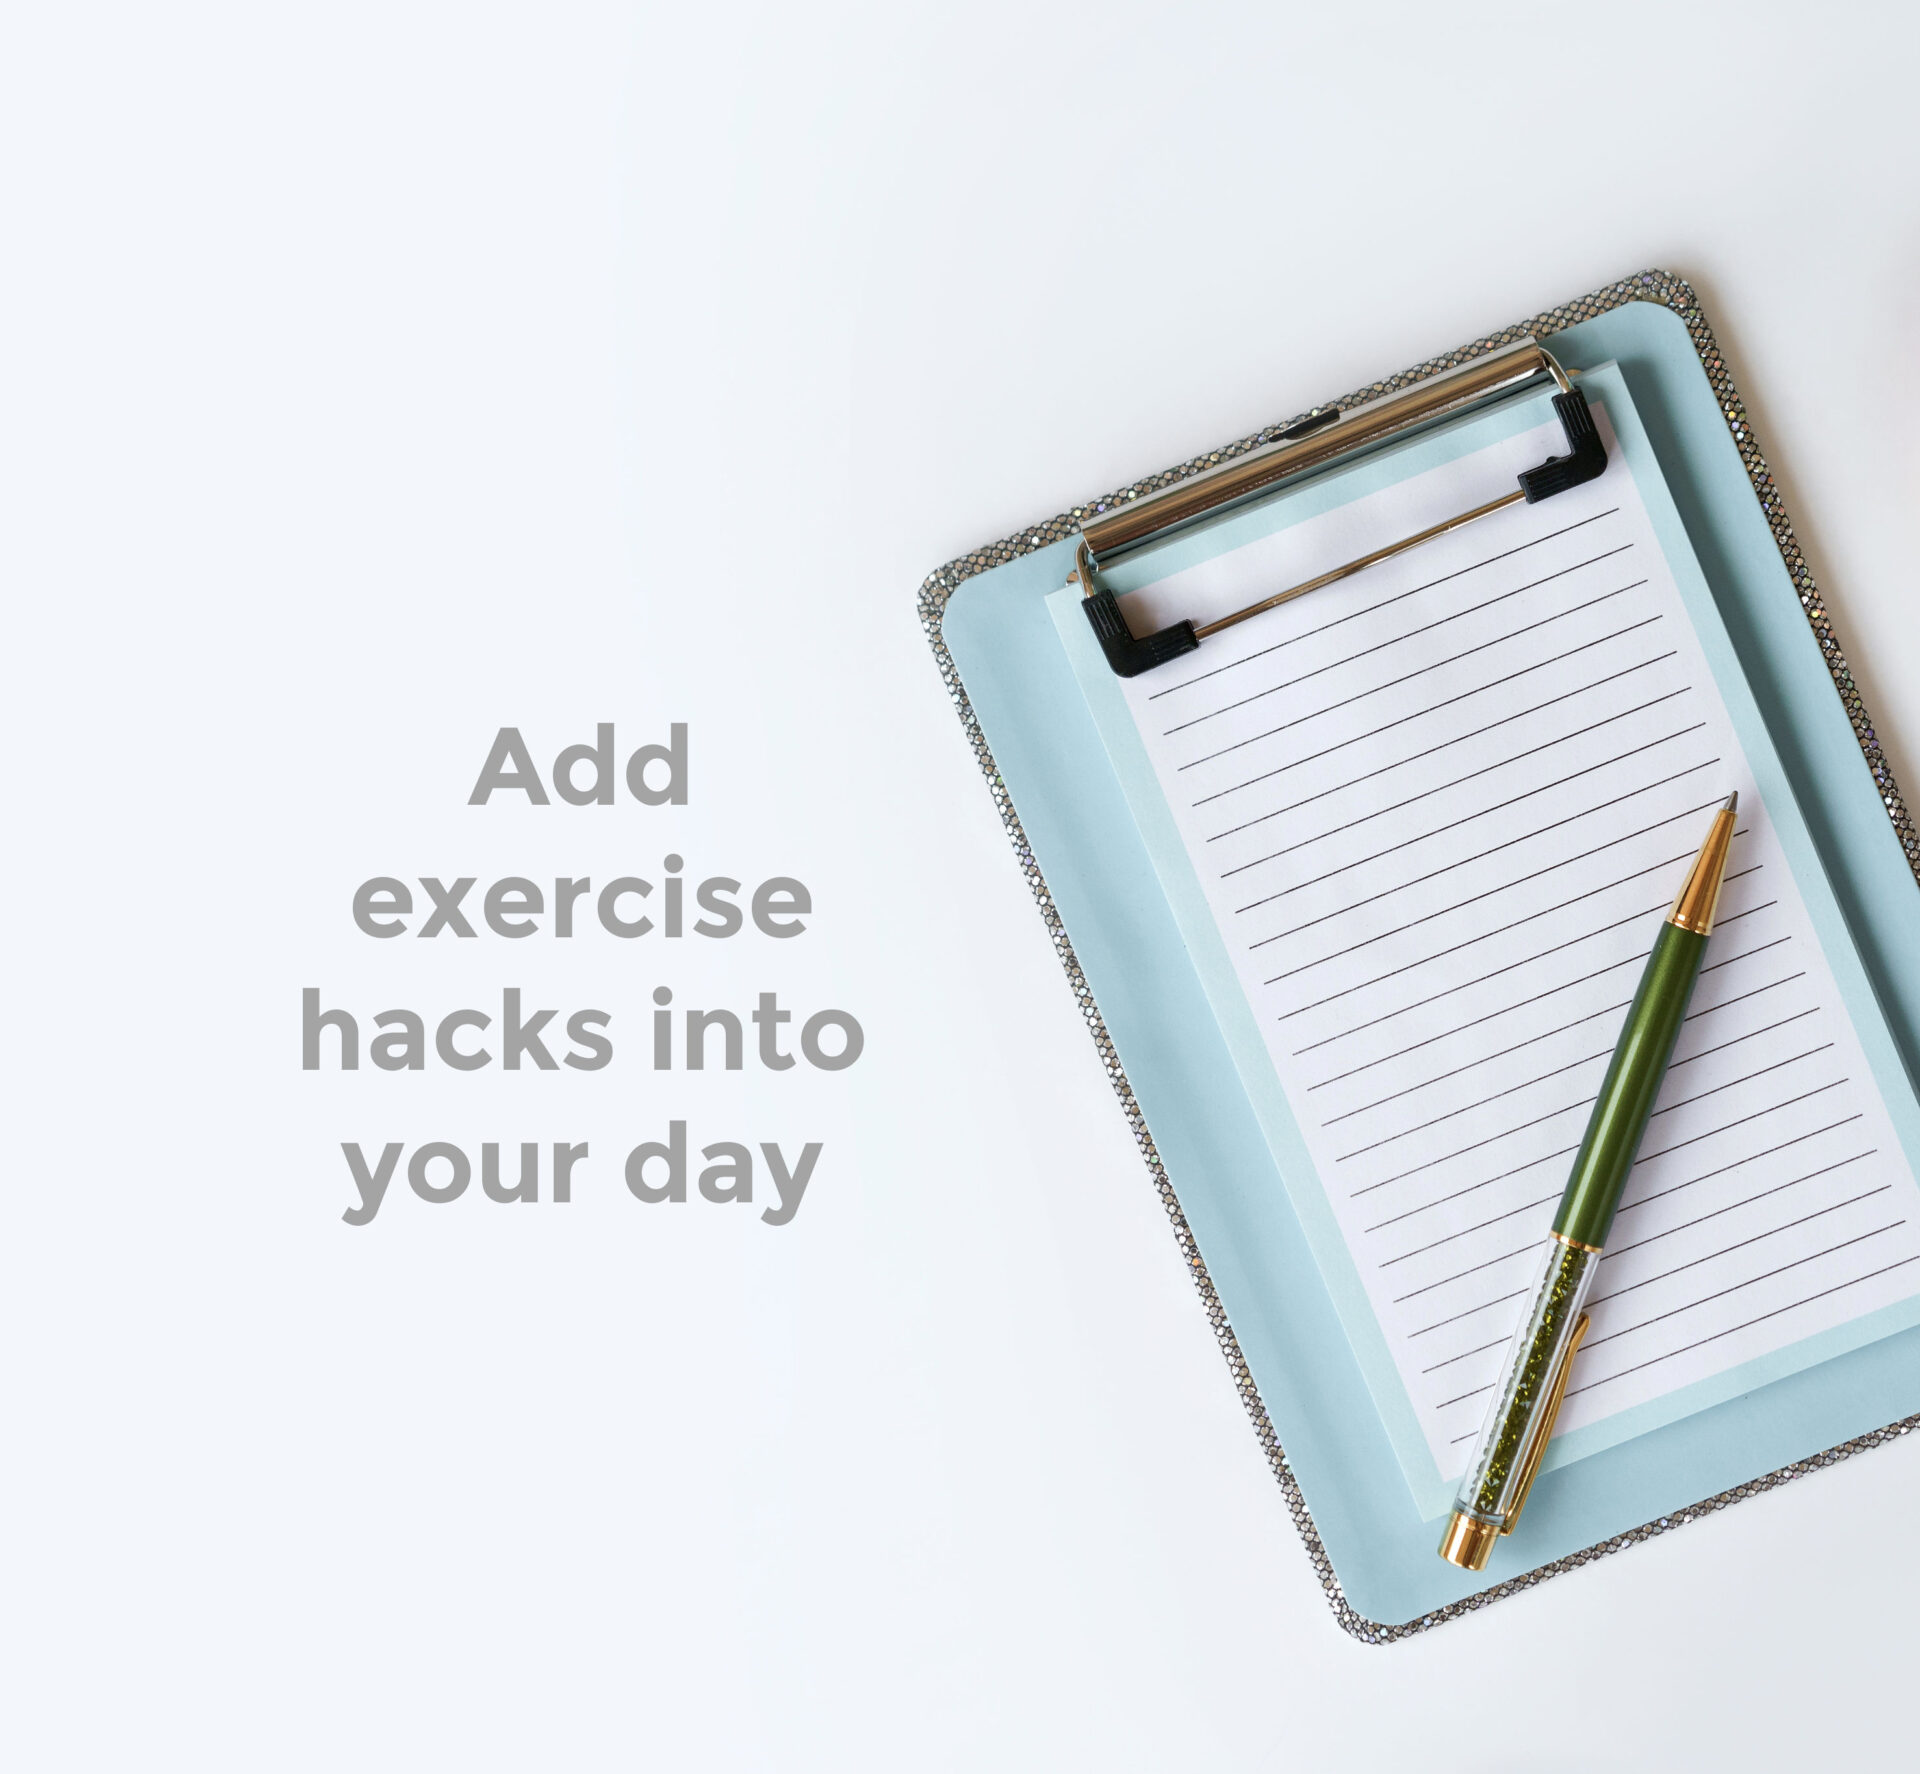 Clipboard with a piece of paper